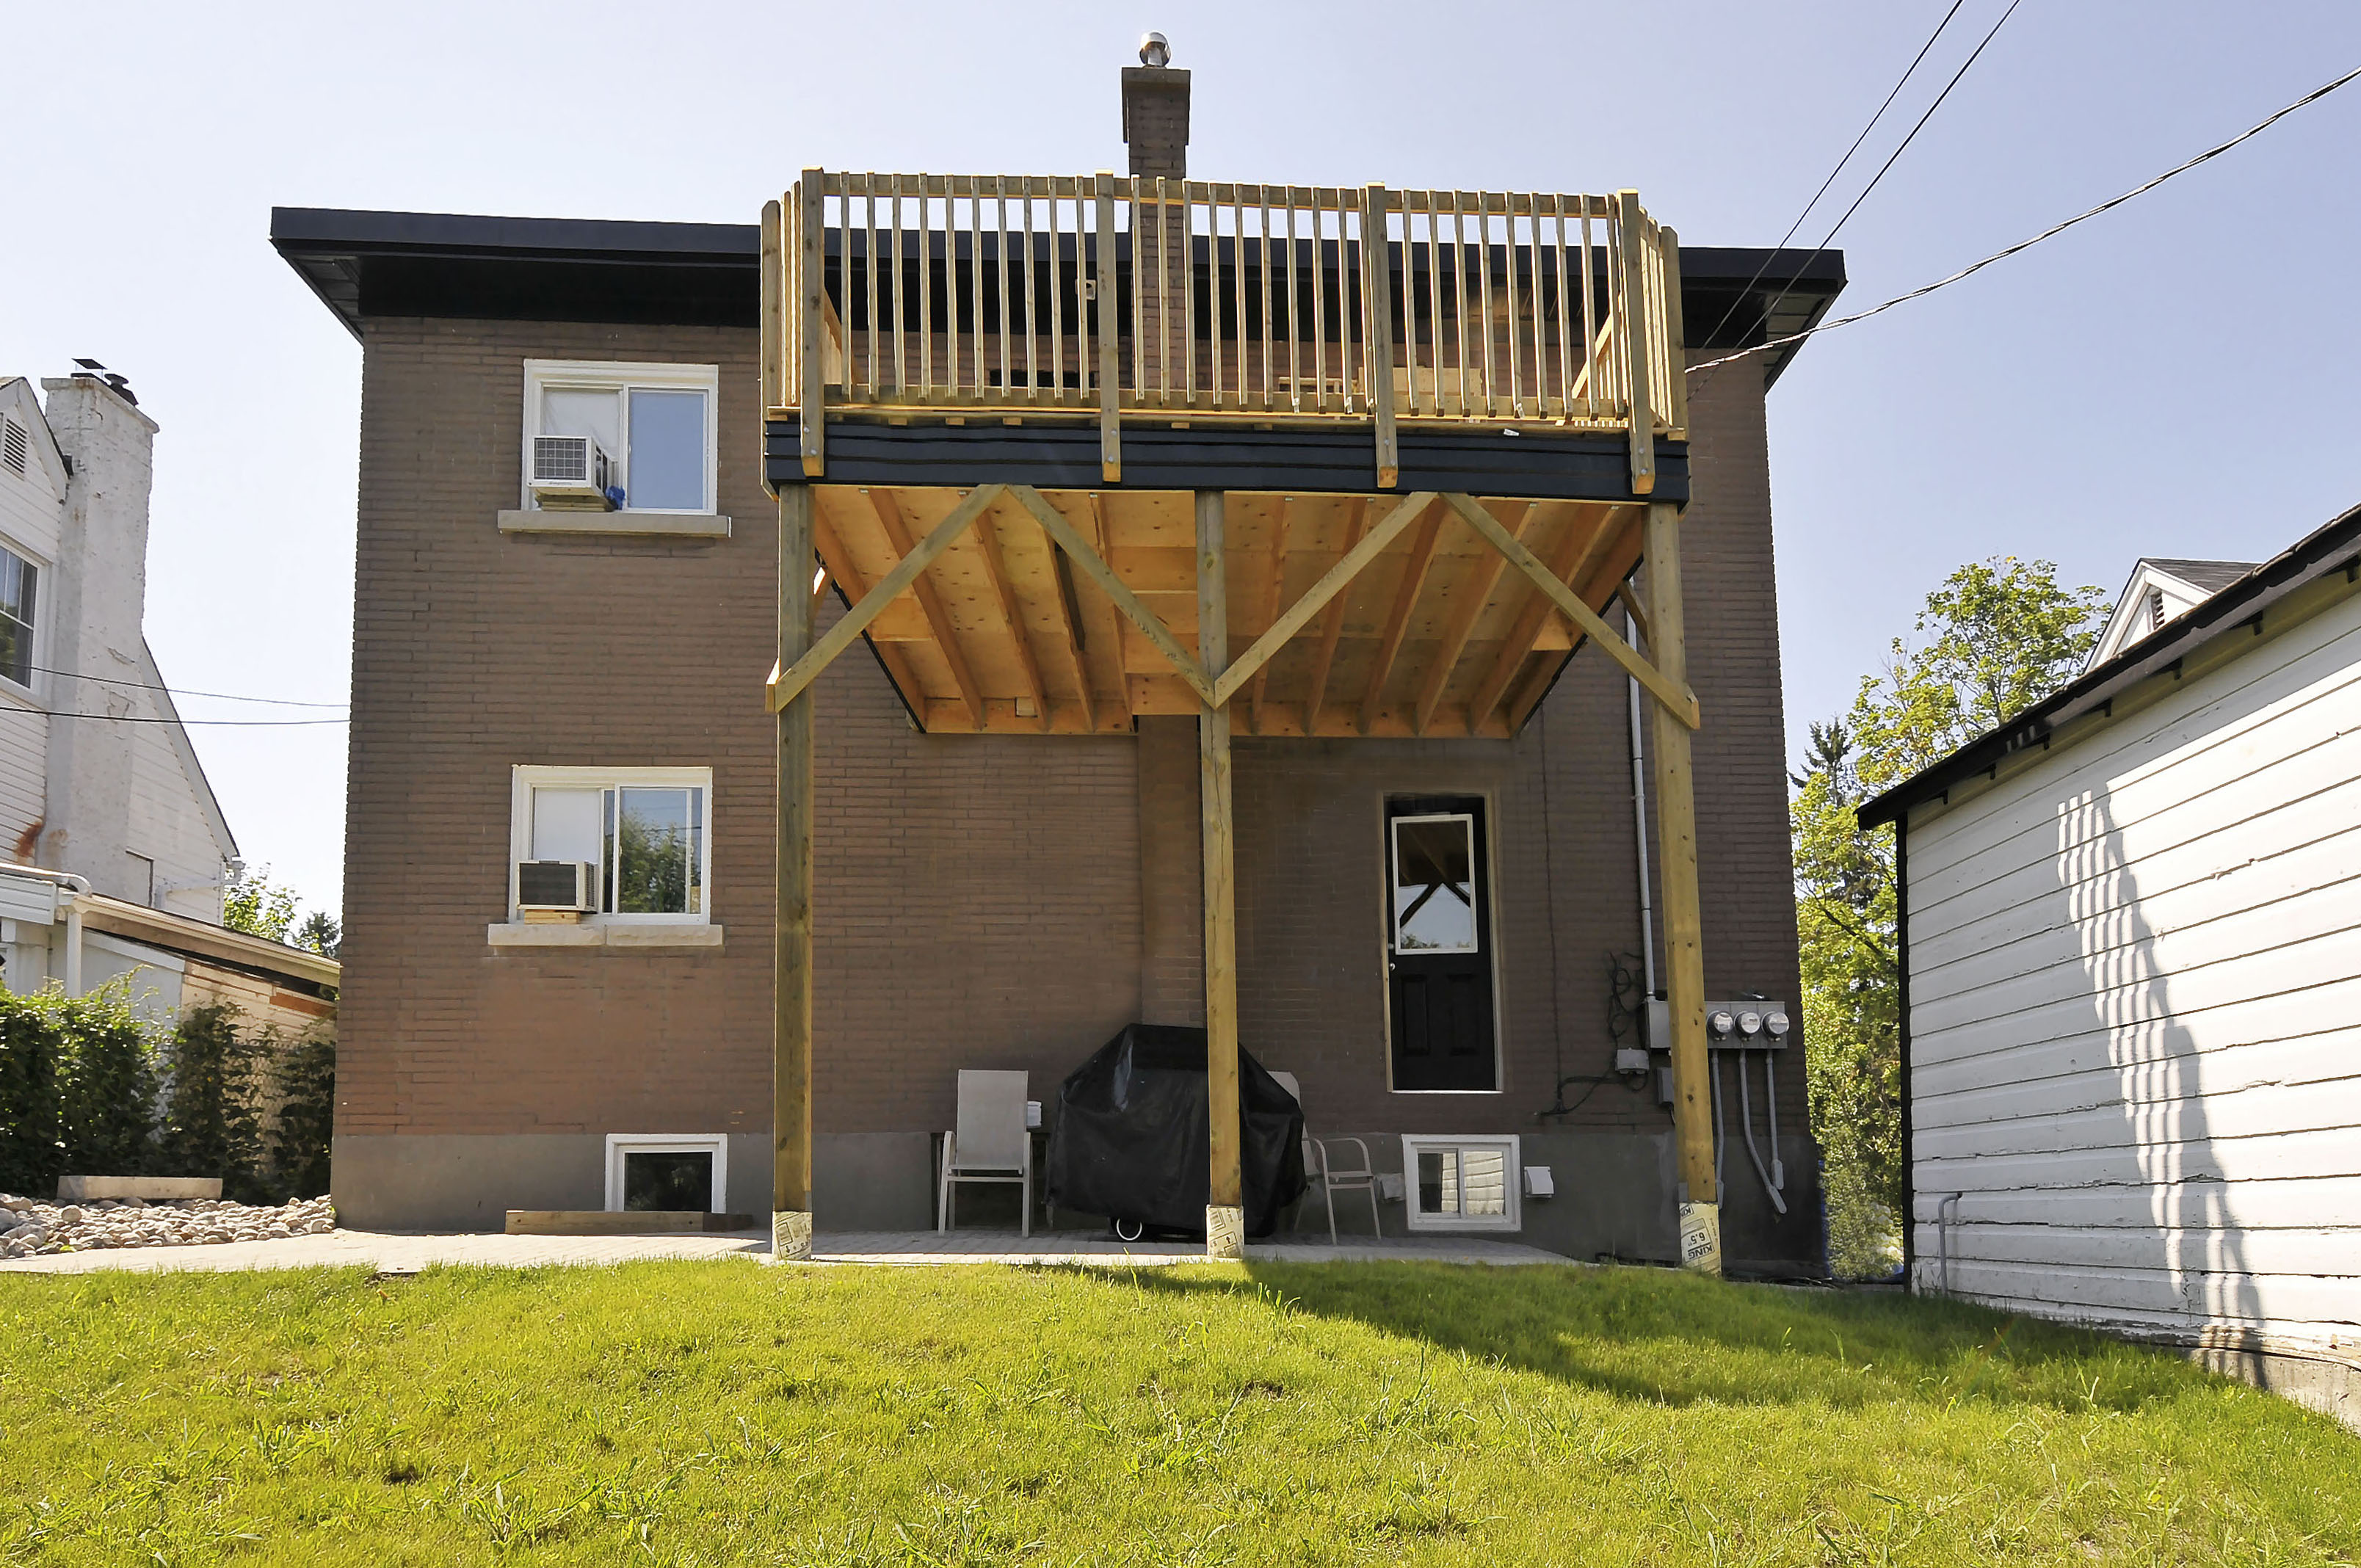 2-1127 Richard Avenue second floor back yard patio